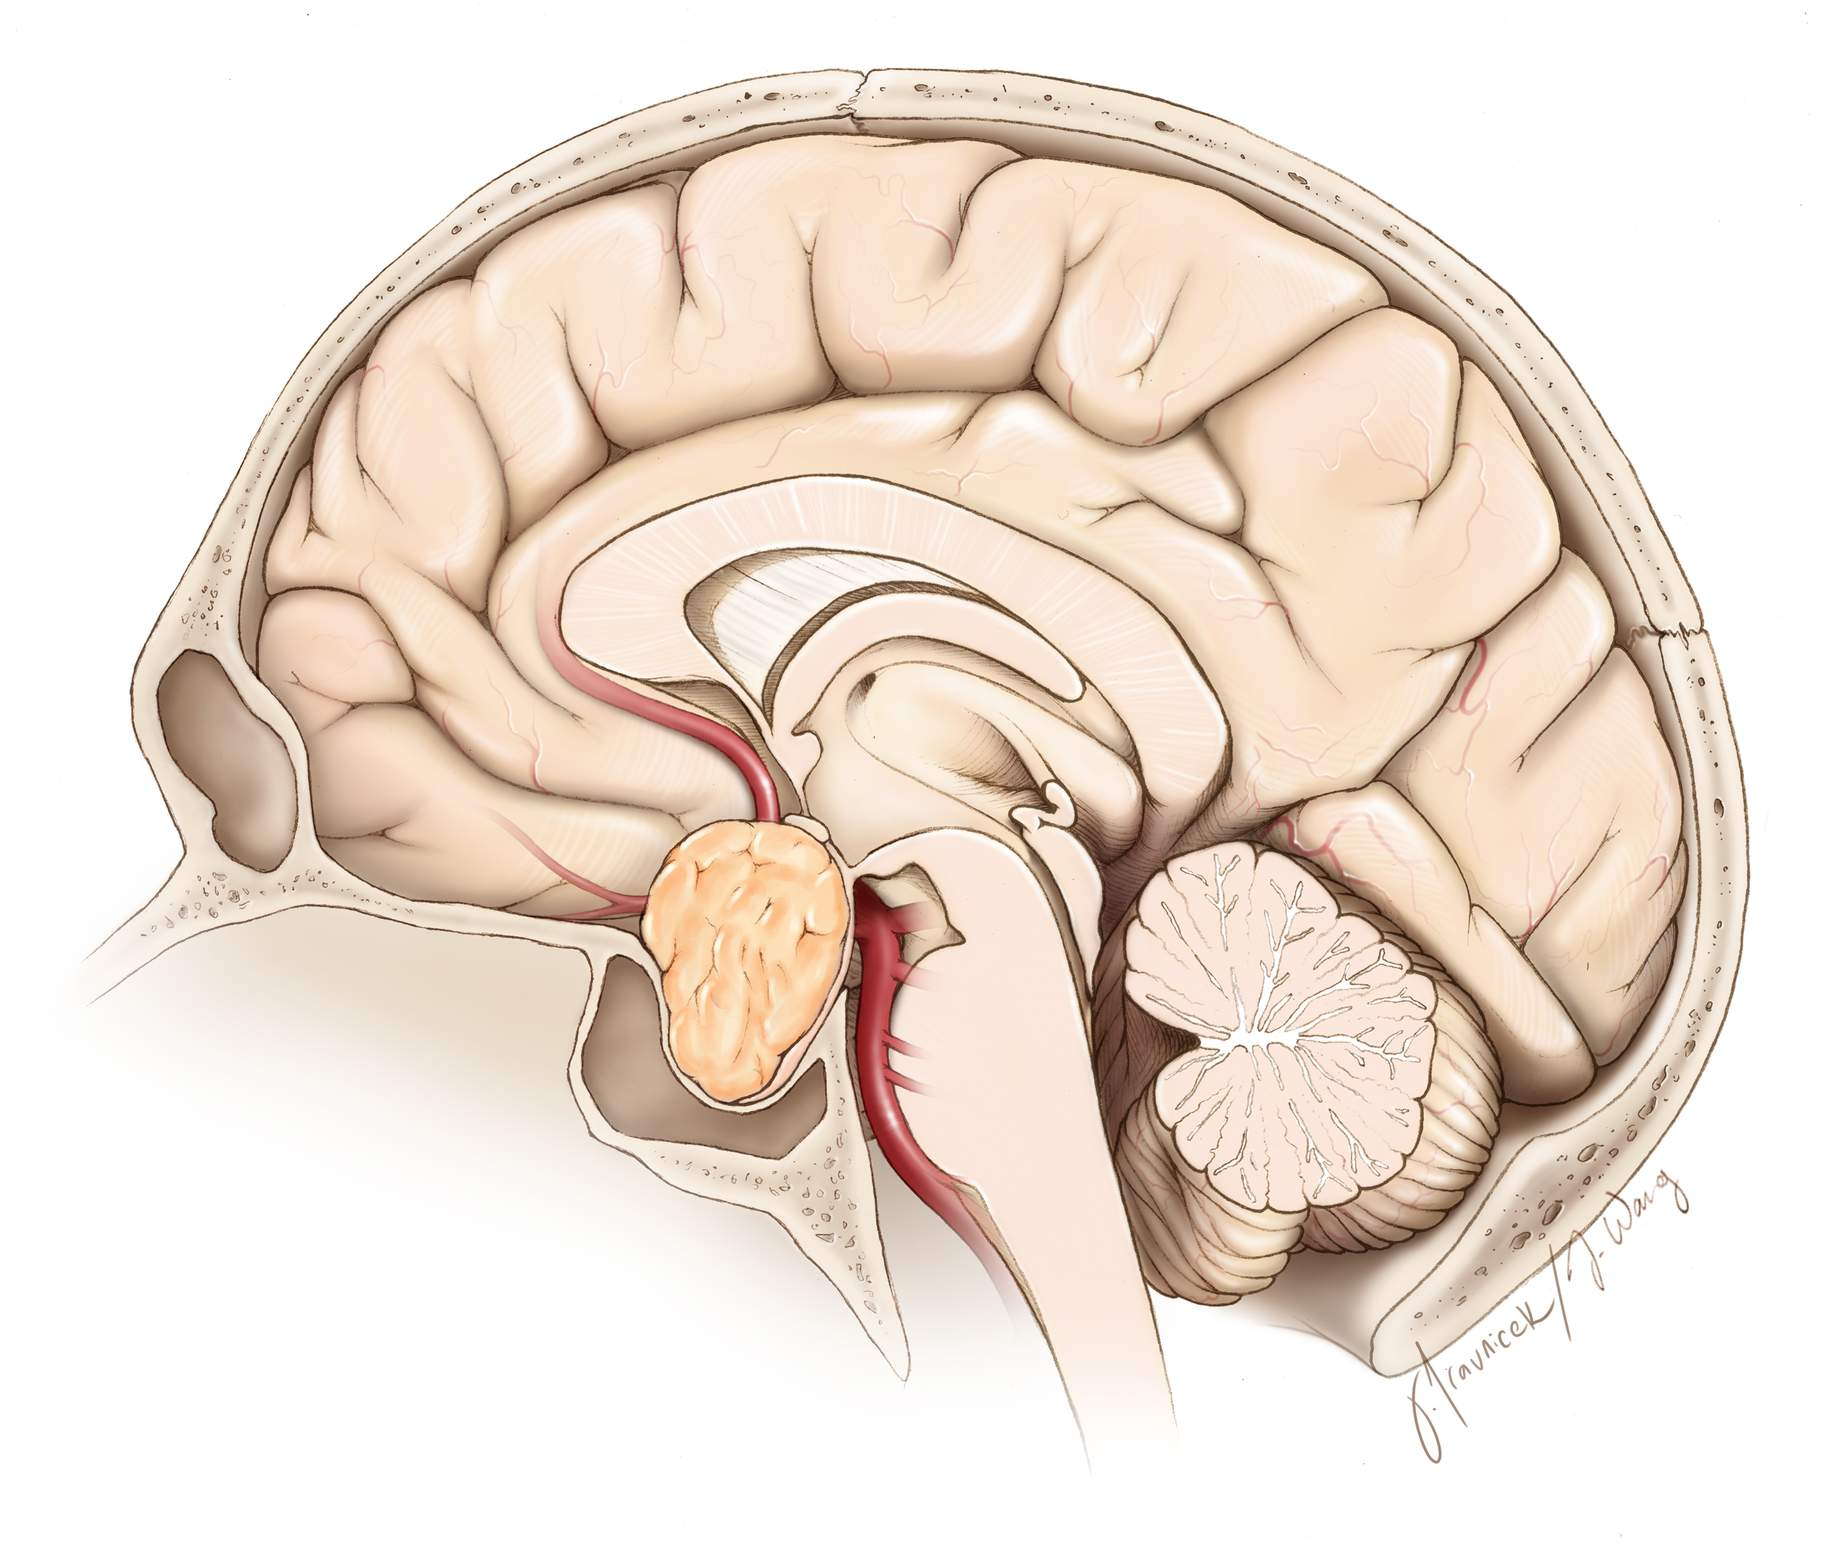 Figure 2. Endonasal approach to a pituitary tumor.